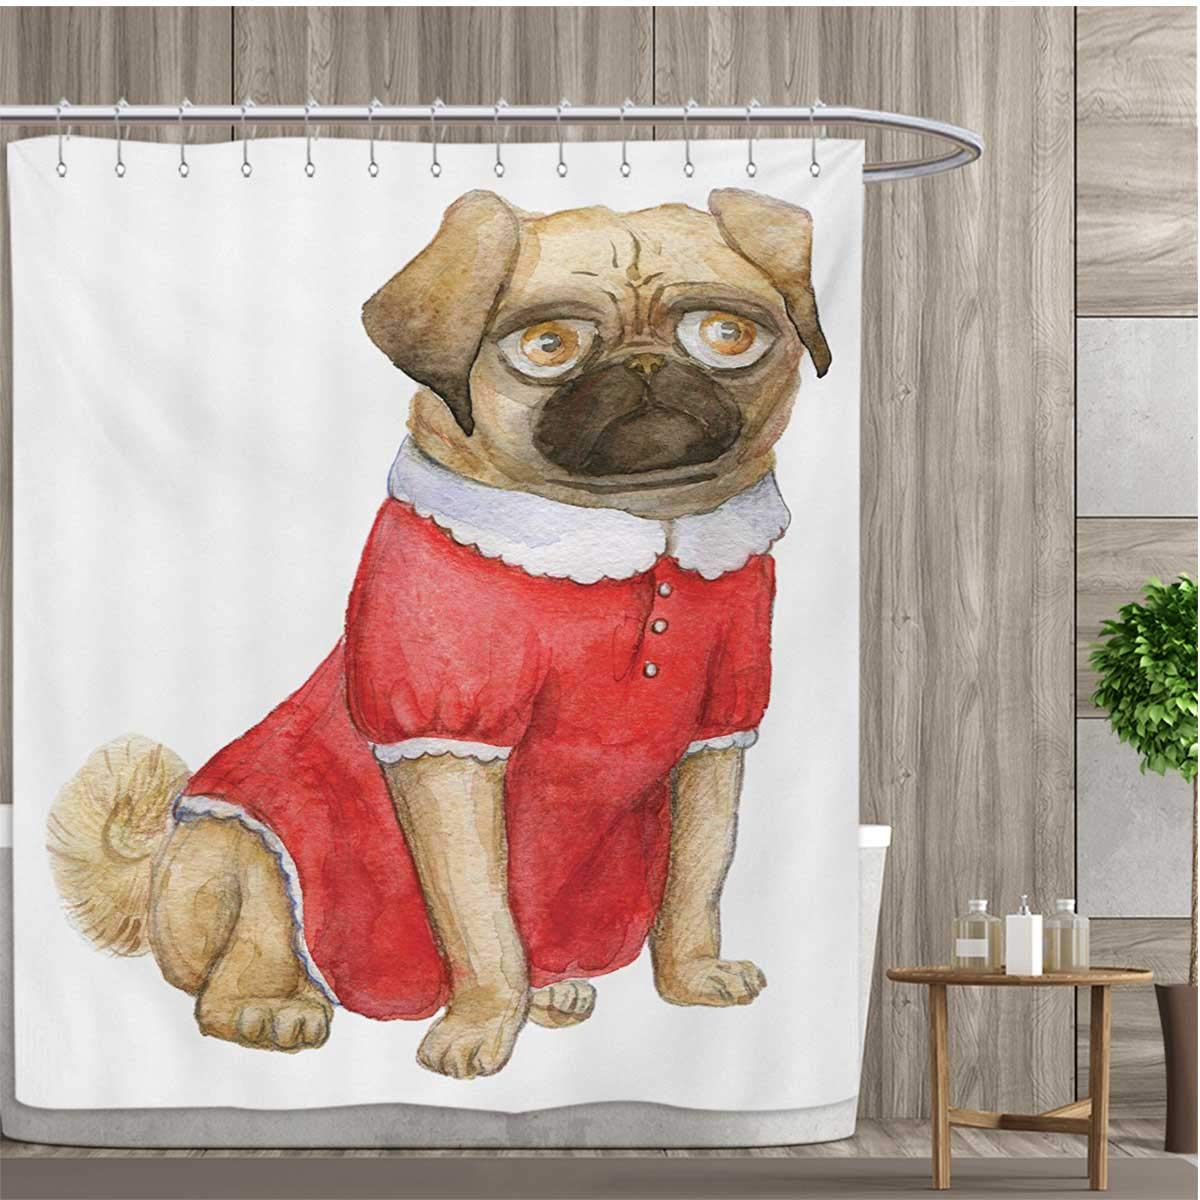 smallfly Pug Shower Curtains Fabric Cute Dog in Red Dress Animal Cartoon Style Design Funny Pet Picture Print Bathroom Accessories 54''x84'' Pale Brown Red Brown